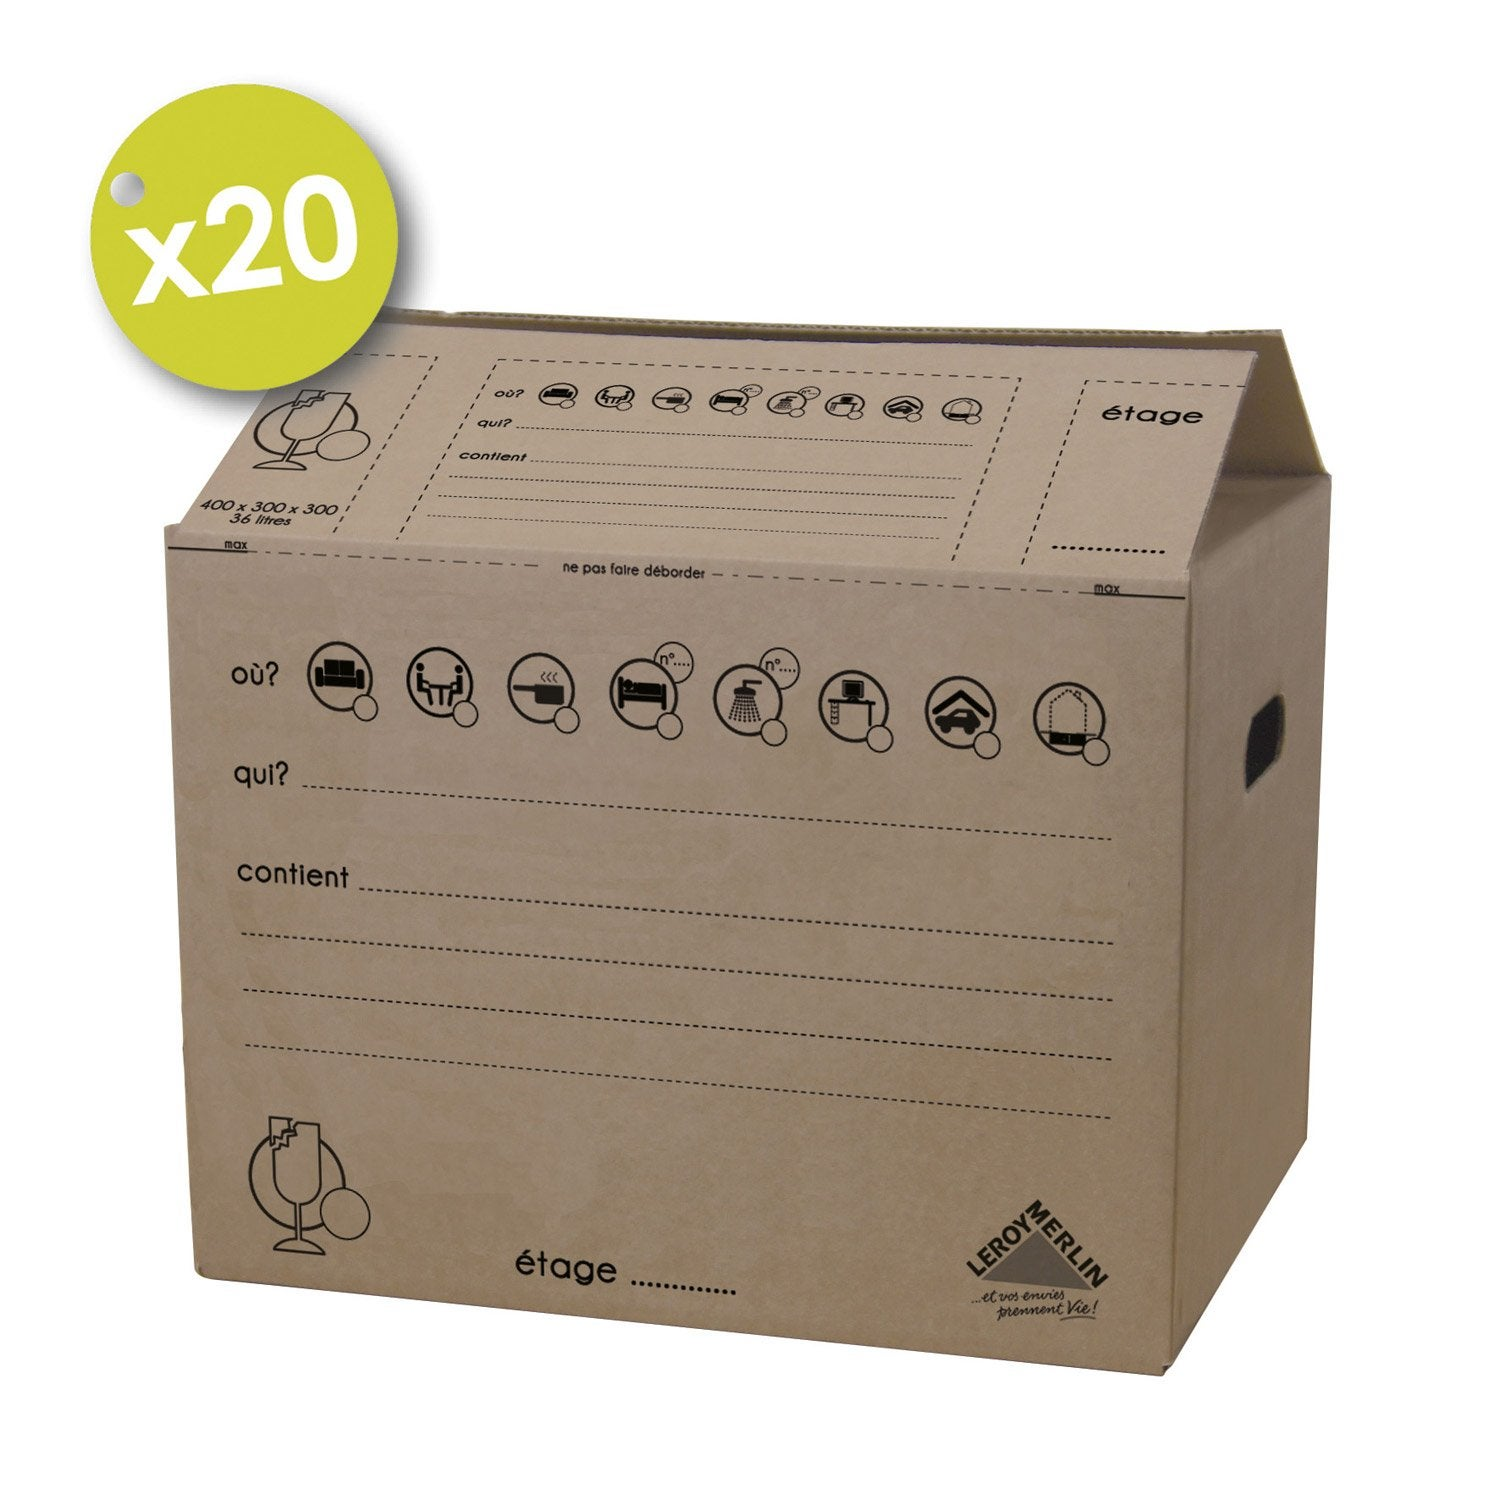 Lot de 20 cartons d m nagement de 36 l 40 x 30 x 30 cm leroy merlin - Cartons demenagement leroy merlin ...